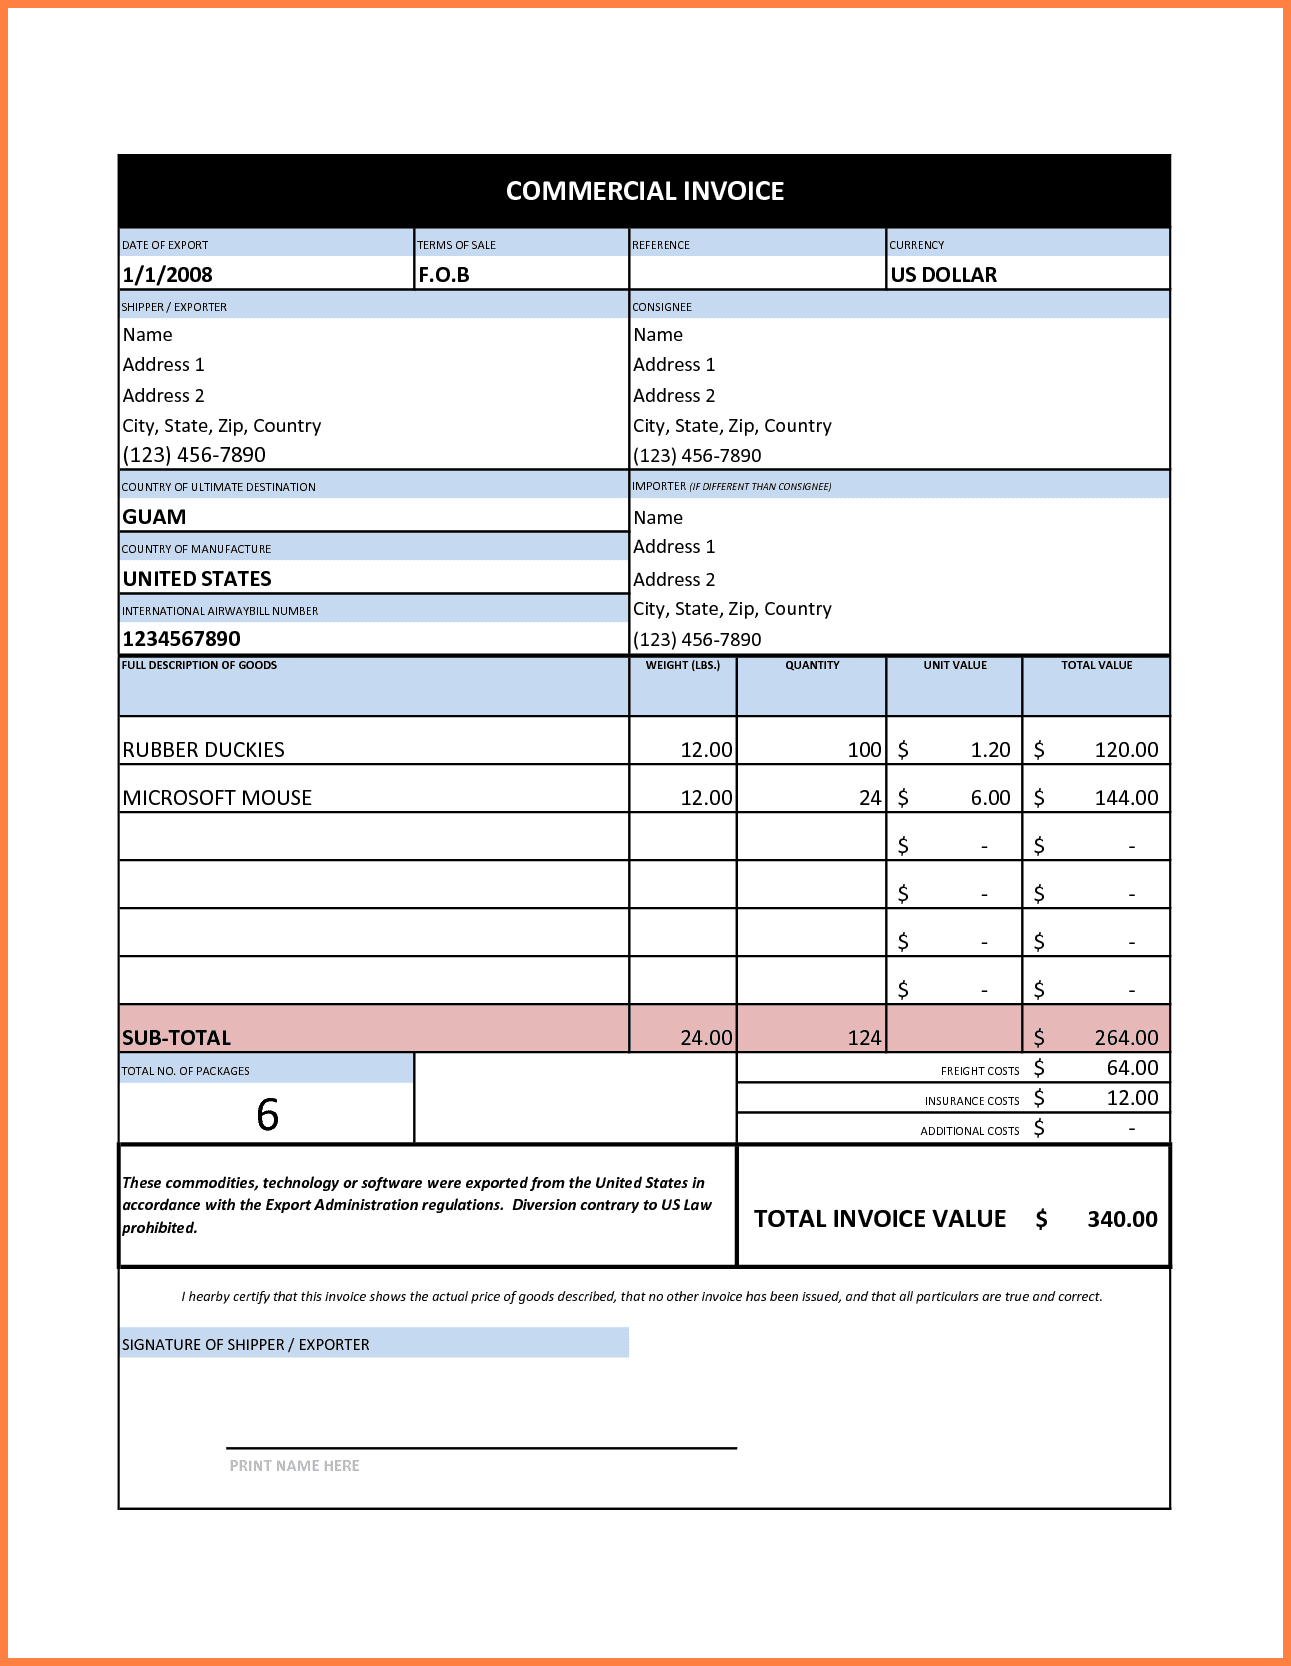 Commercial Invoice Template Excel Free Download And Tax Invoice Template Free Excel